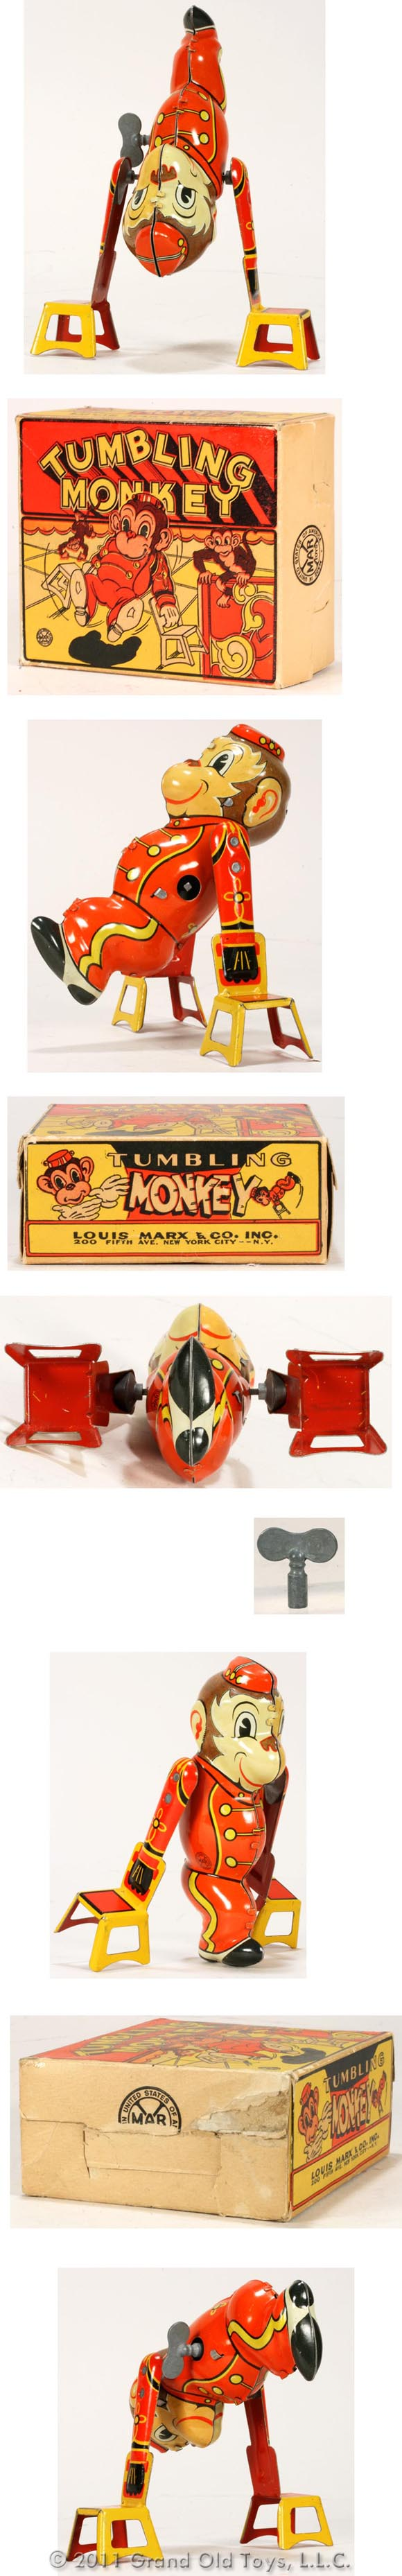 c.1942 Marx Tumbling Monkey In Original Box